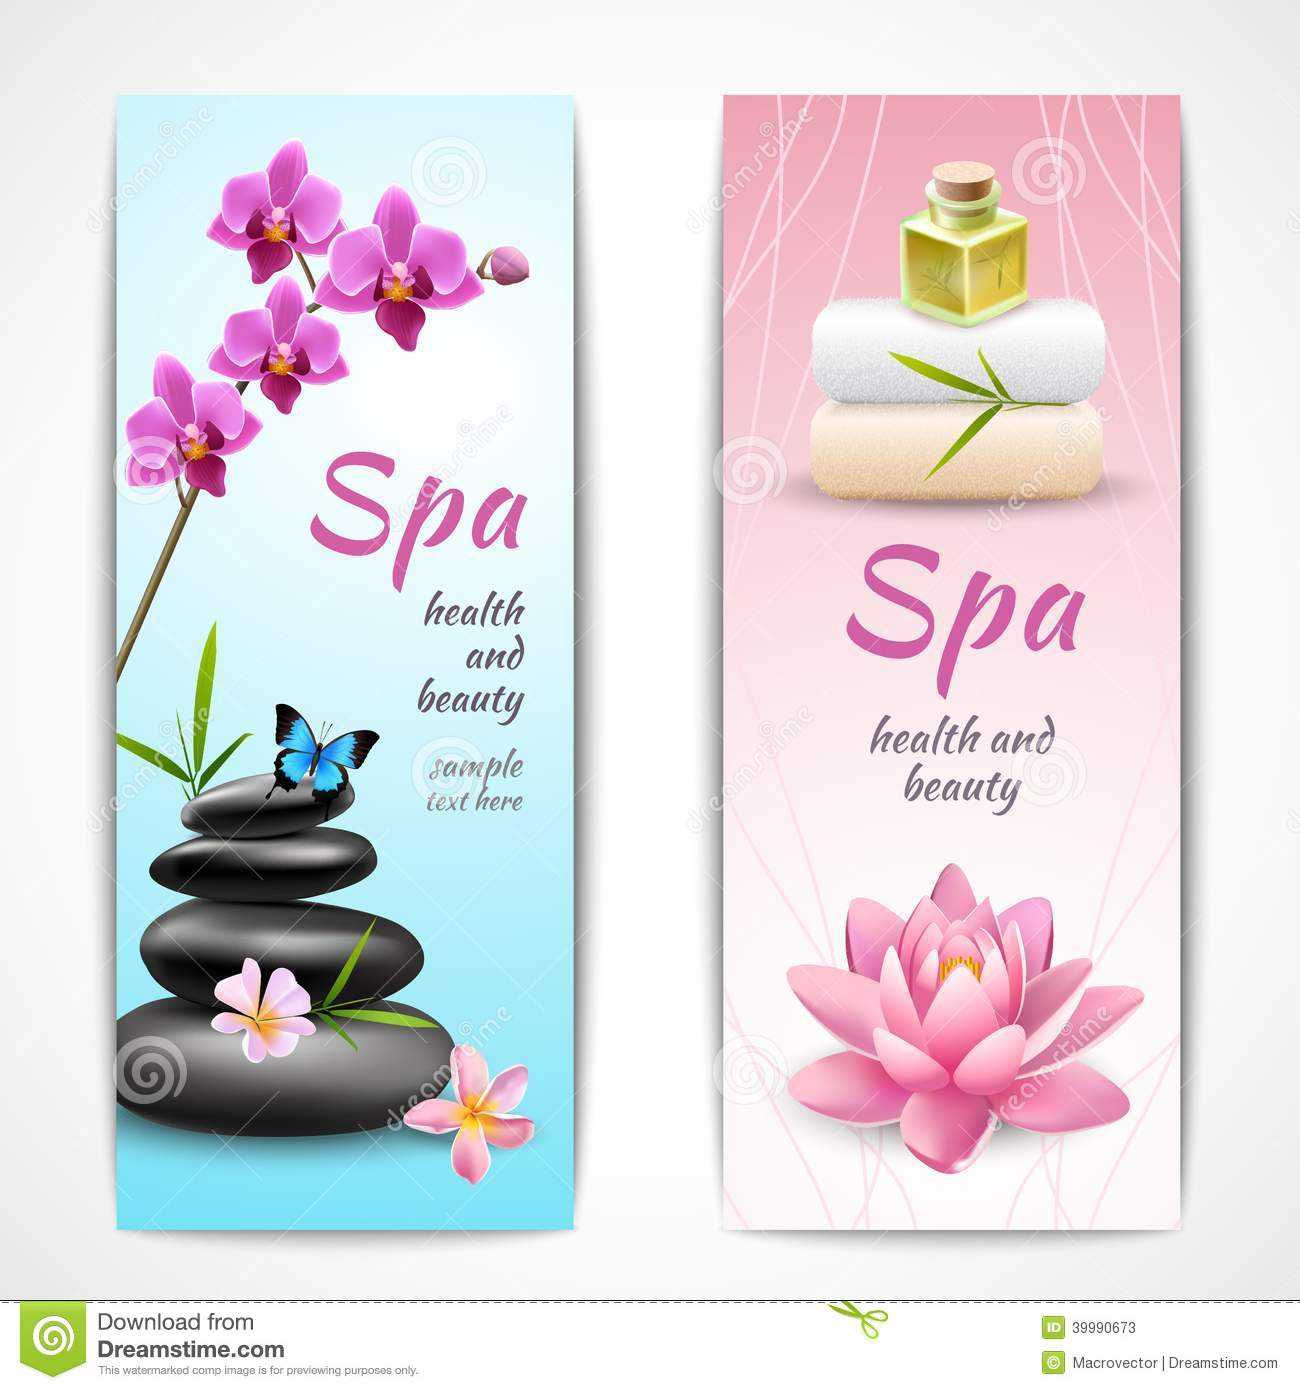 Spa beauty healt...A Beautiful Cartoon Girl Face